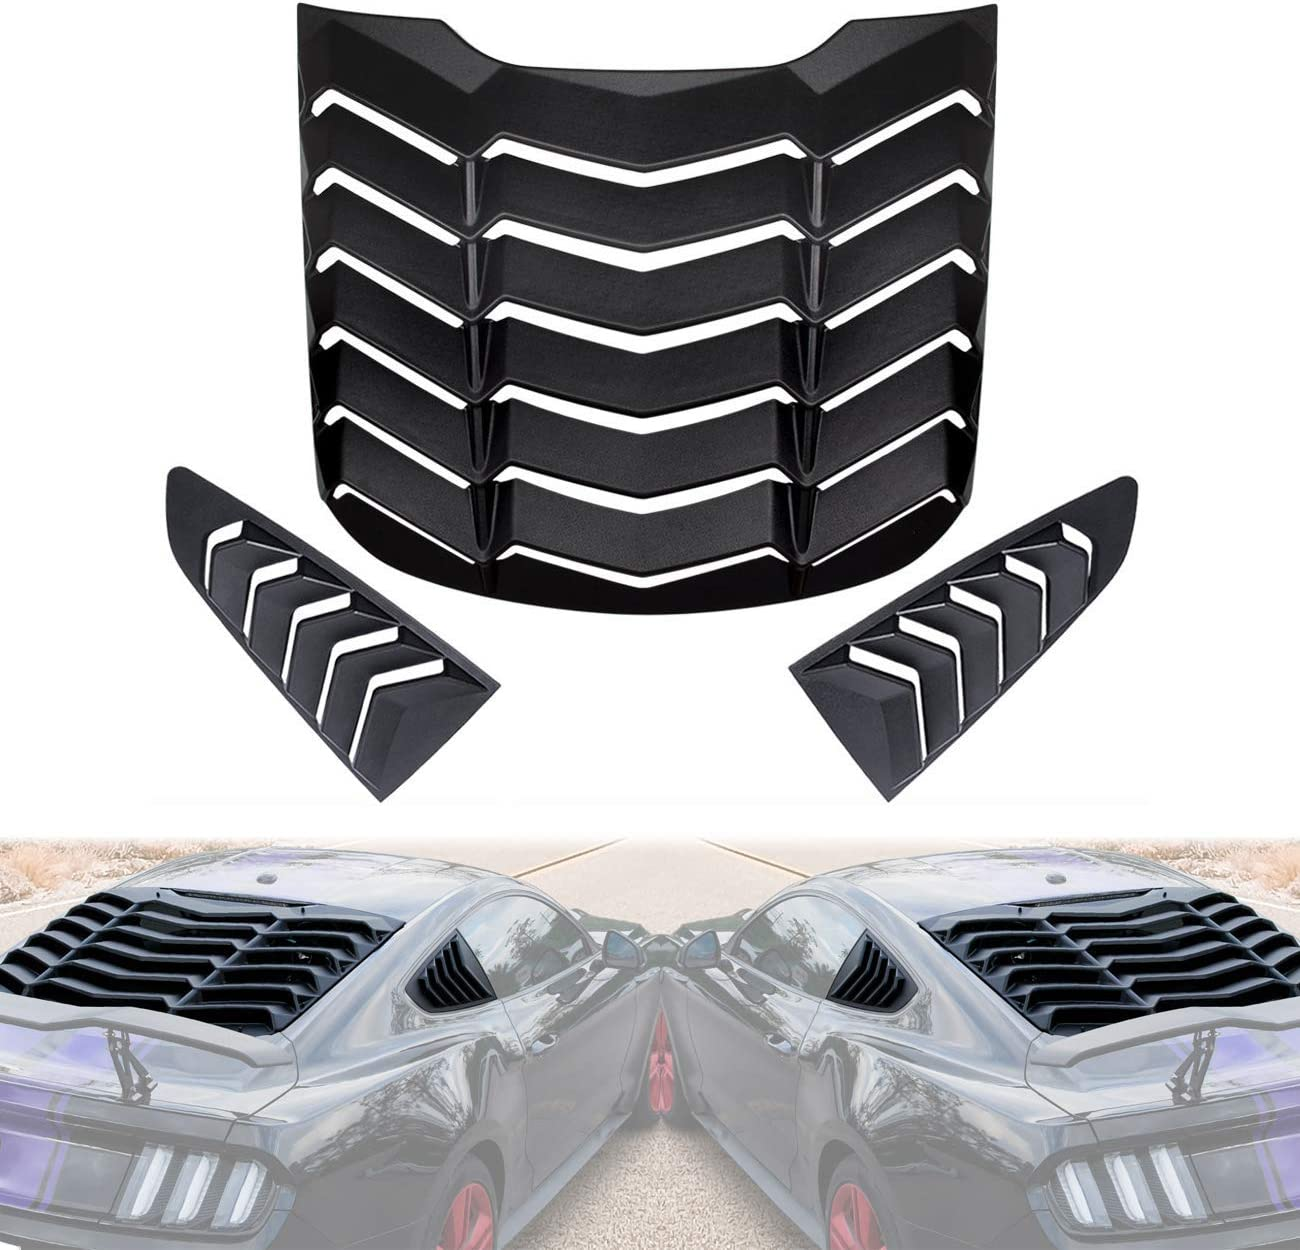 Rear/&Side Quarter Window Louvers Scoop Windshield Sun Shade Rain Cover in GT Lambo Style Matte Black ABS Fit for Ford Mustang 2015 2016 2017 2018 2019 2020